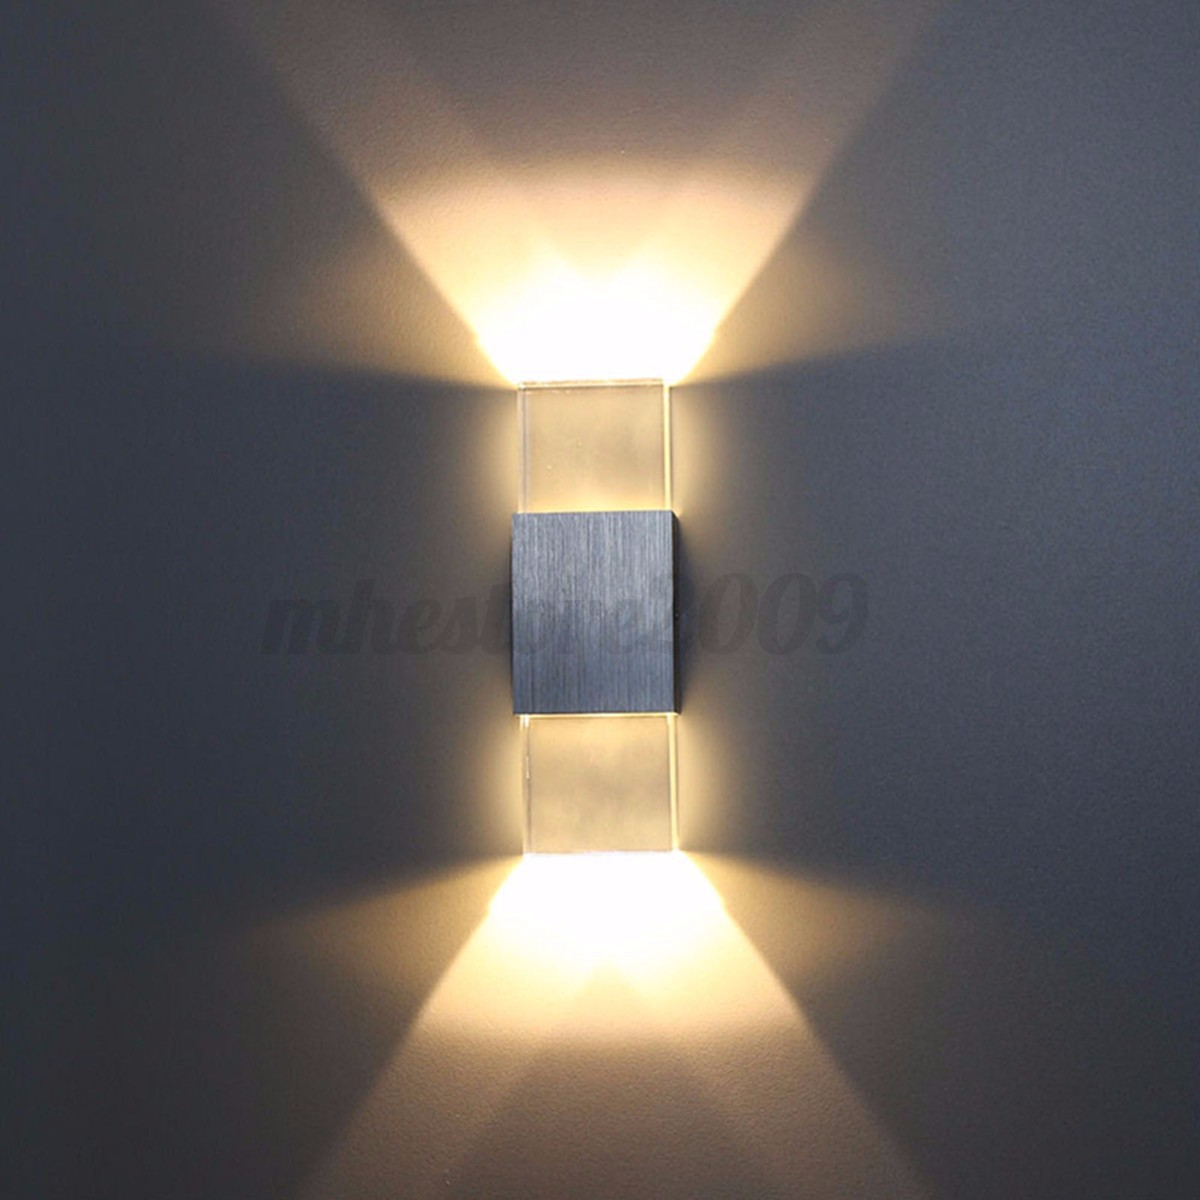 modern 2w led wall light up down lamp - Wall Light Fixtures For Bedroom